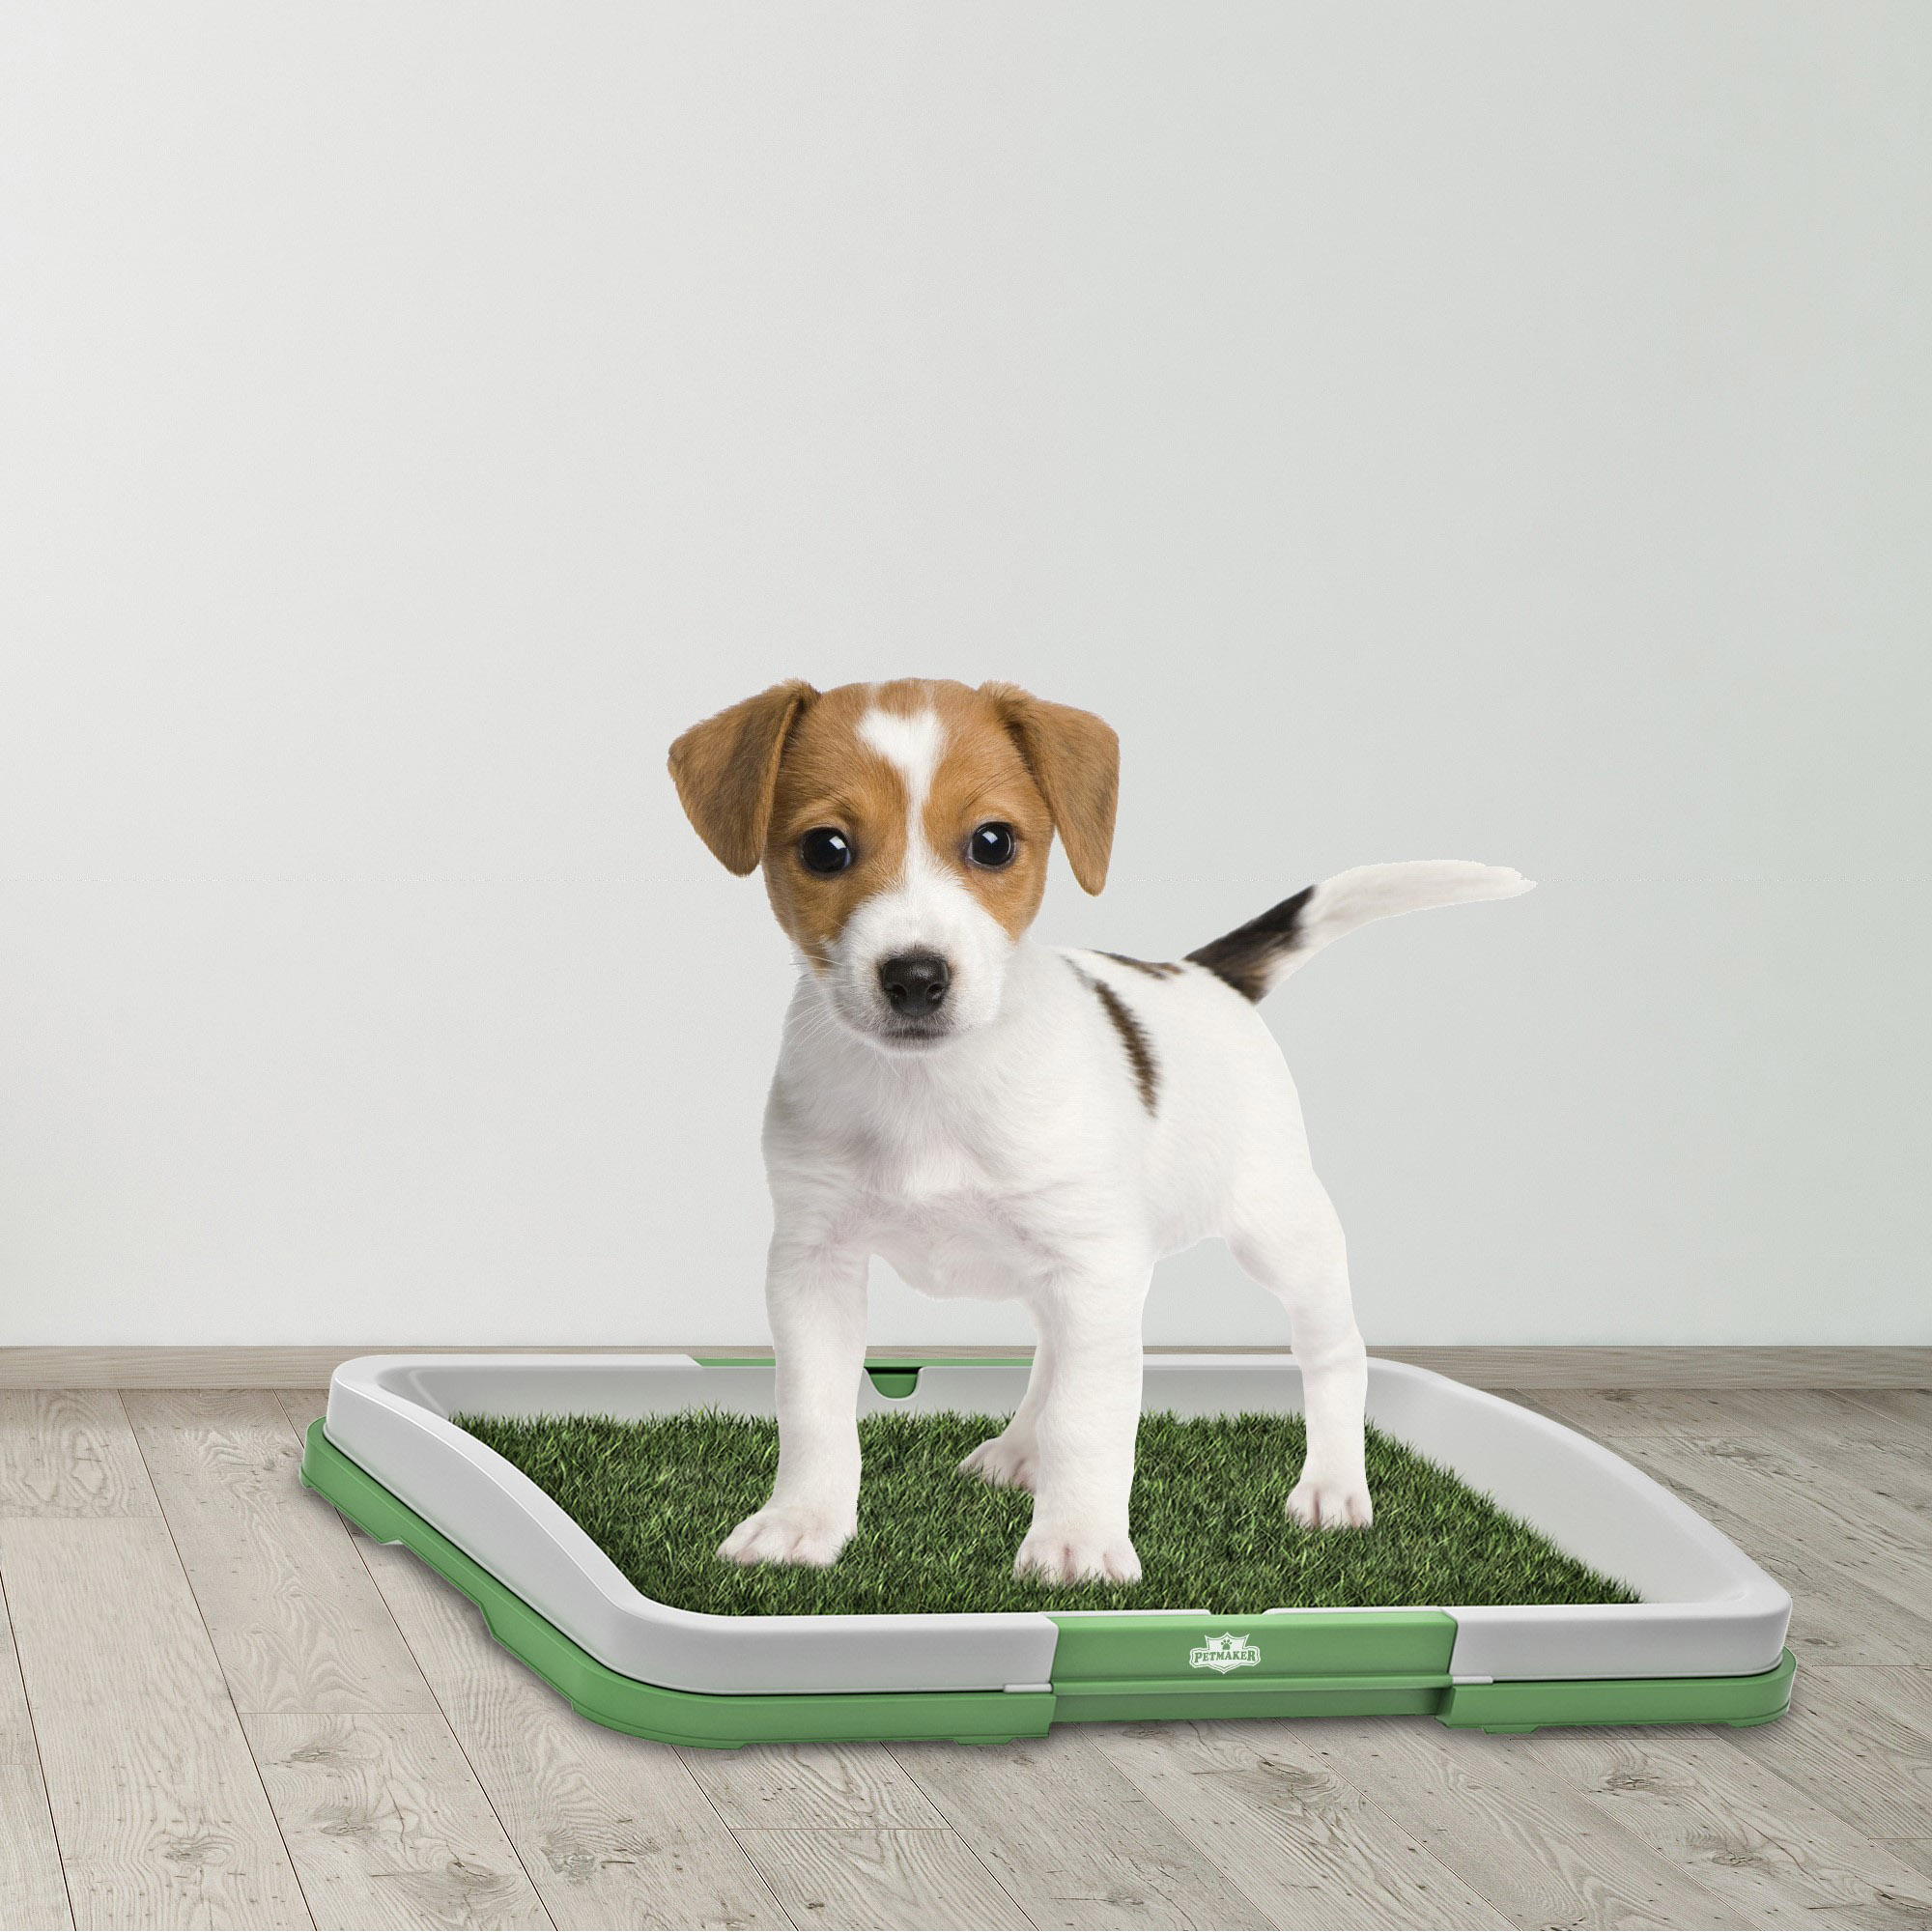 Artificial Grass Bathroom Mat for Puppies and Small Pets Portable